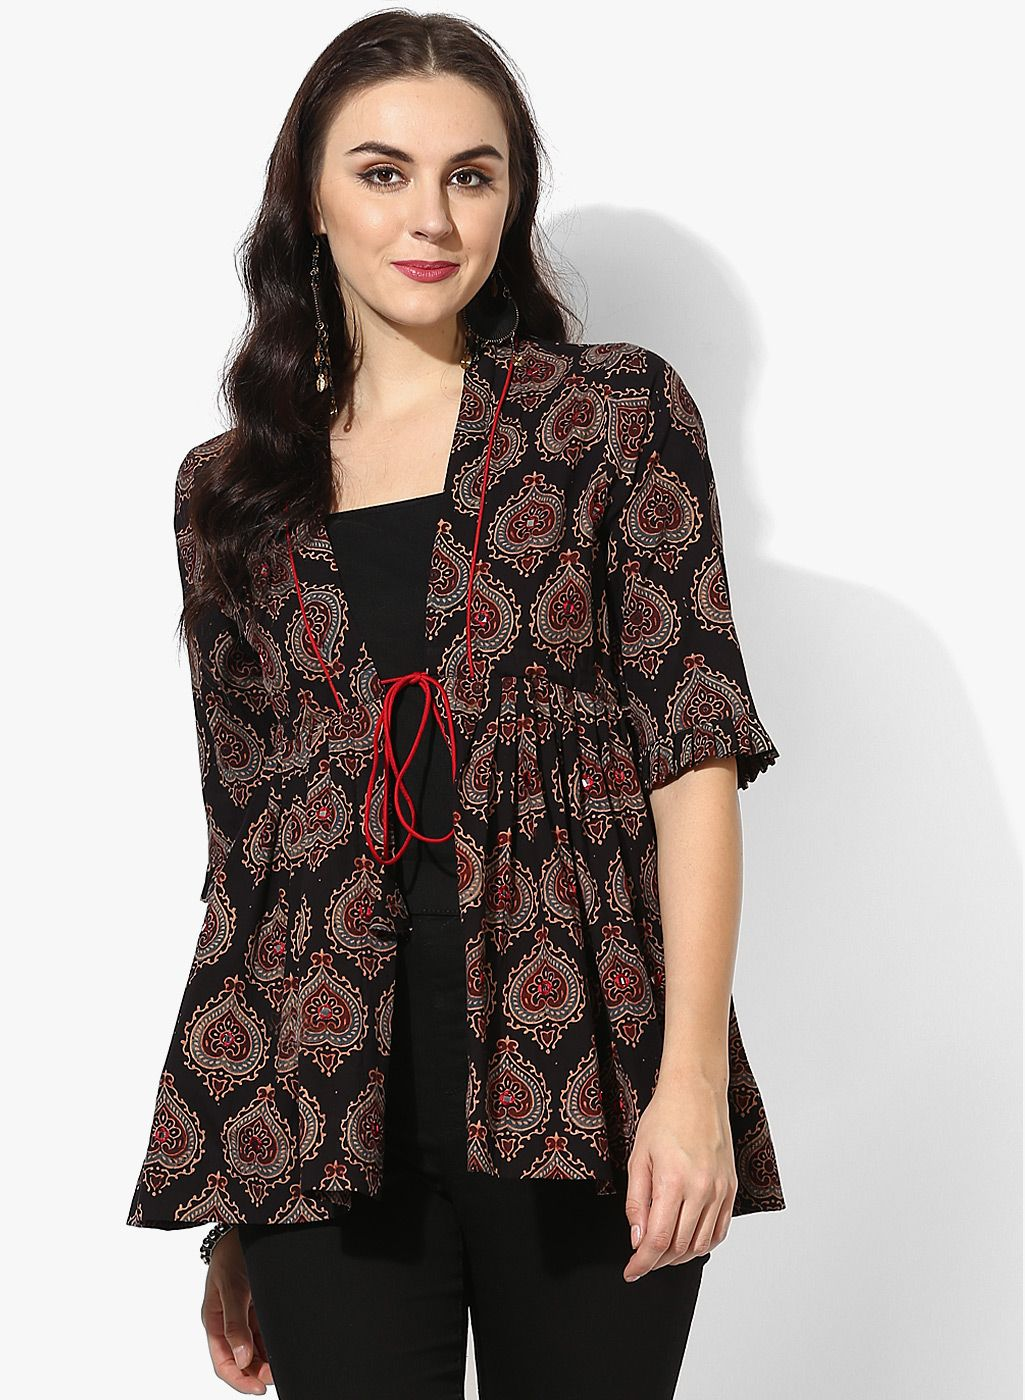 724a656f2 Buy Sangria Frilled Elbow Sleeves Short Ajrak Shrug With Mirror Detailing  for Women Online India, Best Prices, Reviews | SA038WA45VUFINDFAS